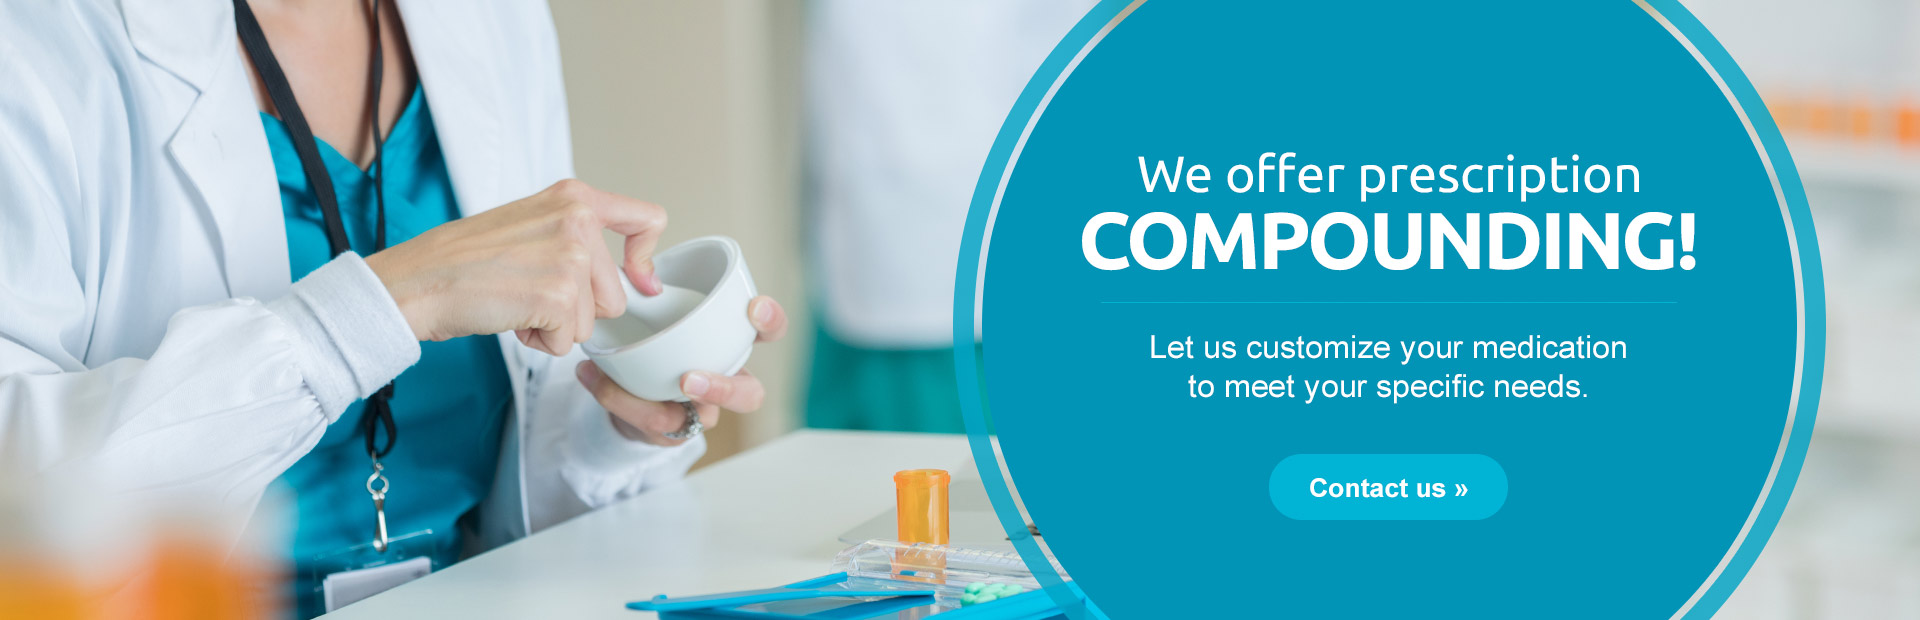 We offer prescription compounding! Click here to contact us.